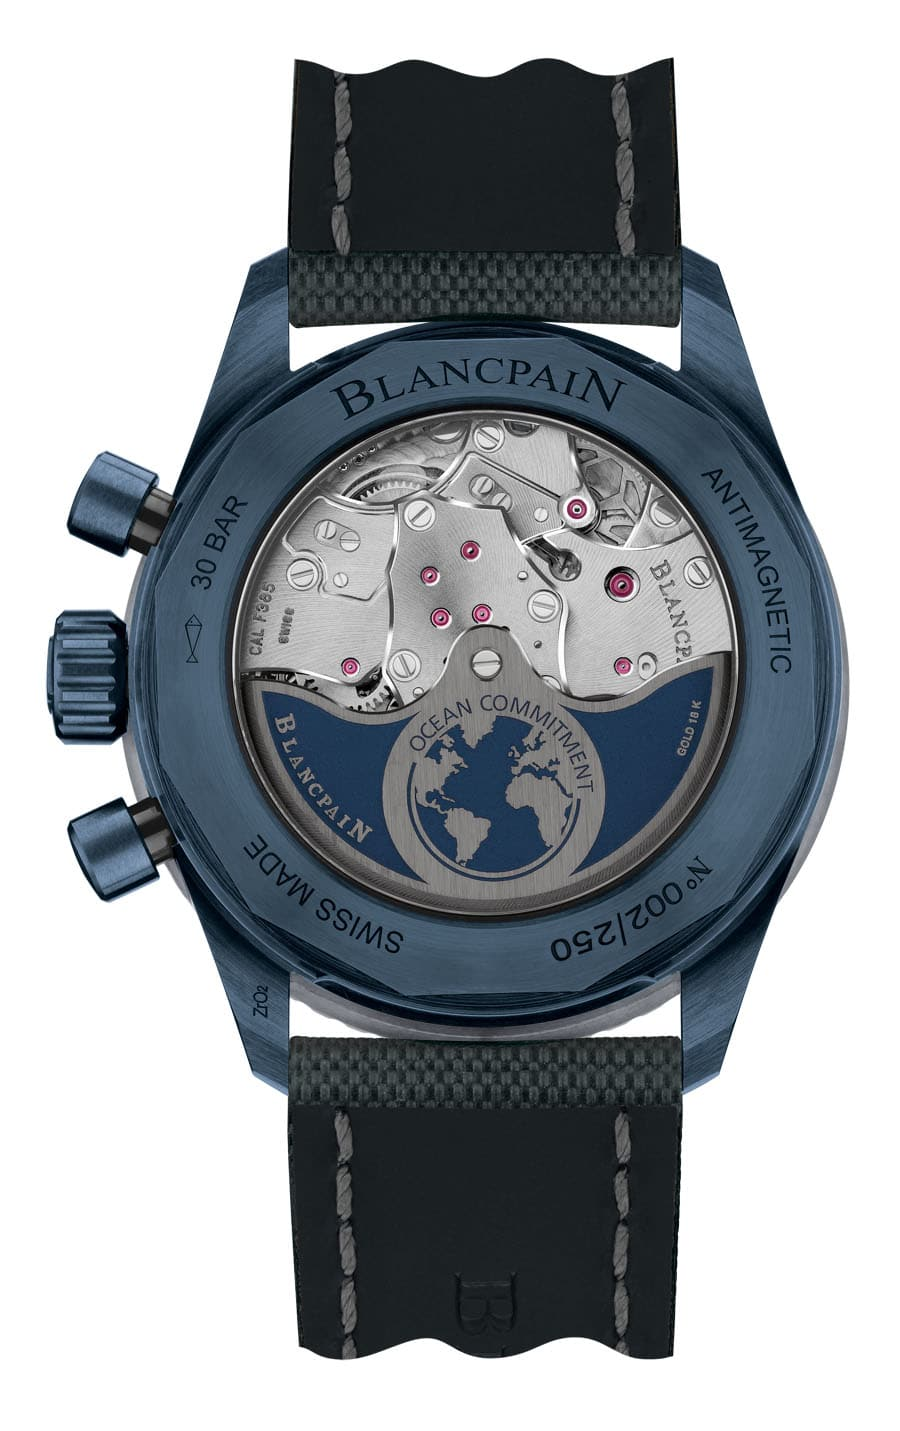 Blancpain: Flyback Chronograph Fifty Fathoms Bathyscaphe Ocean Commitment II Rückseite